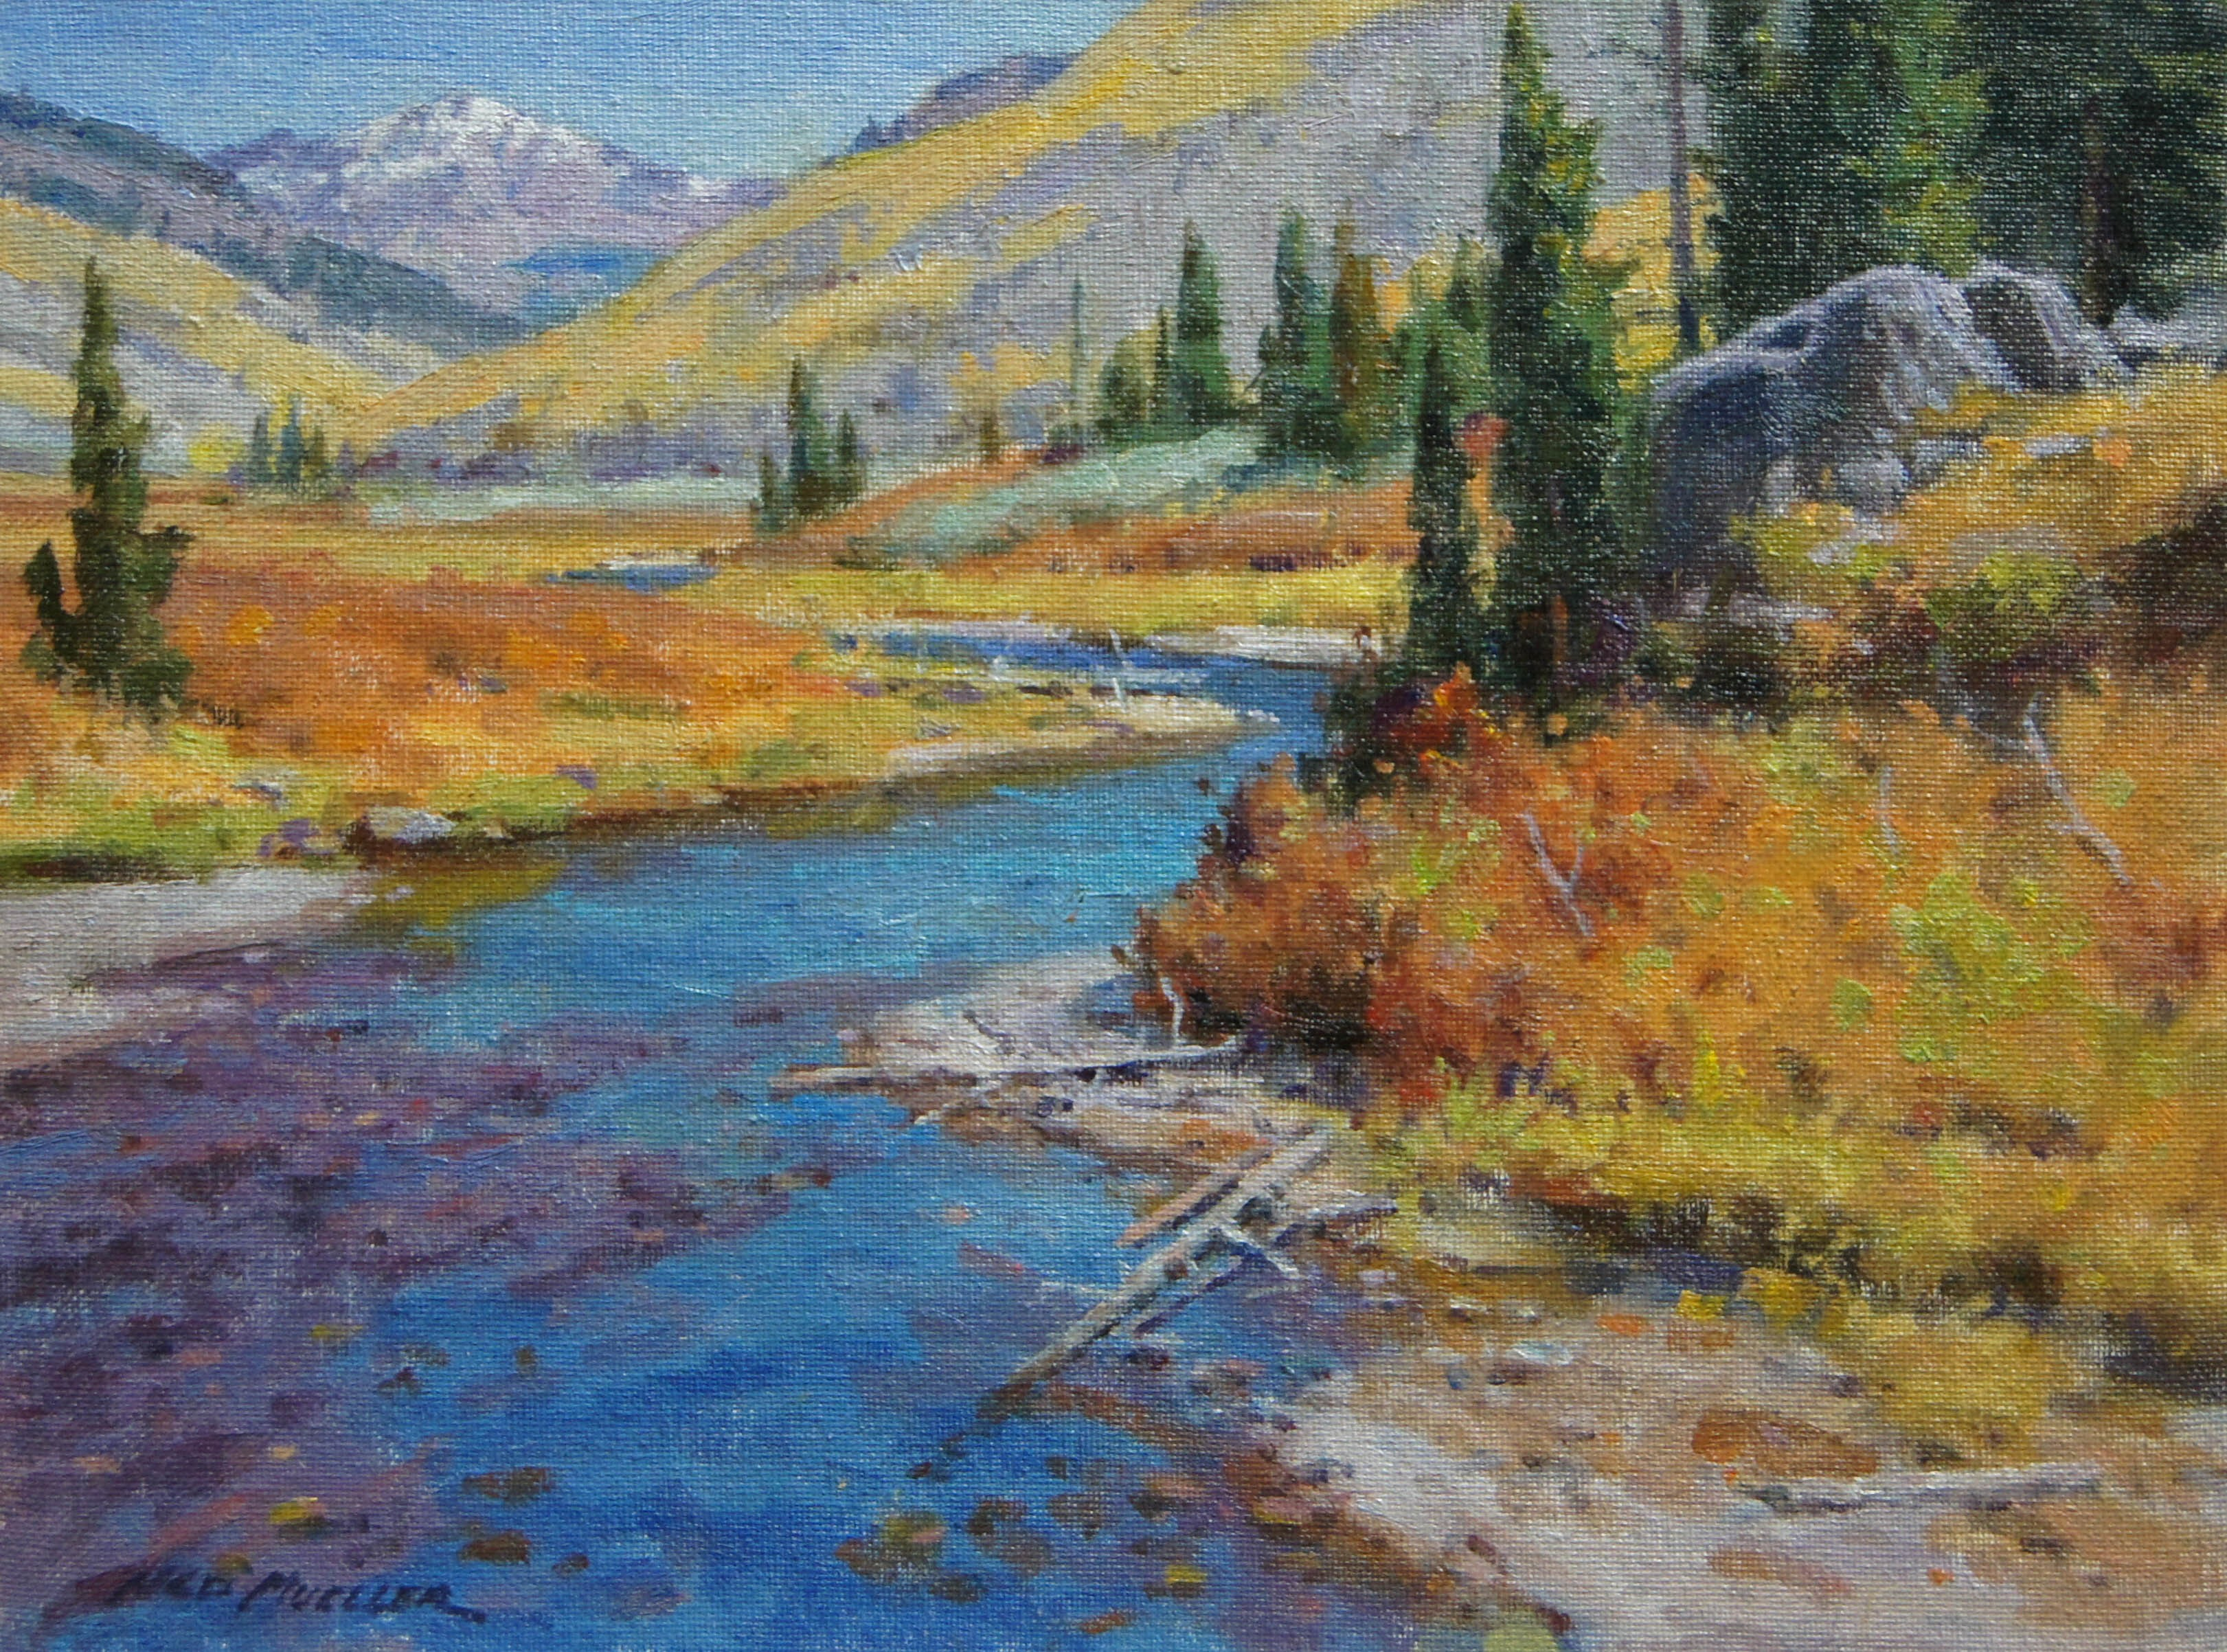 """Crested Butte Autumn"" by N. Mueller"